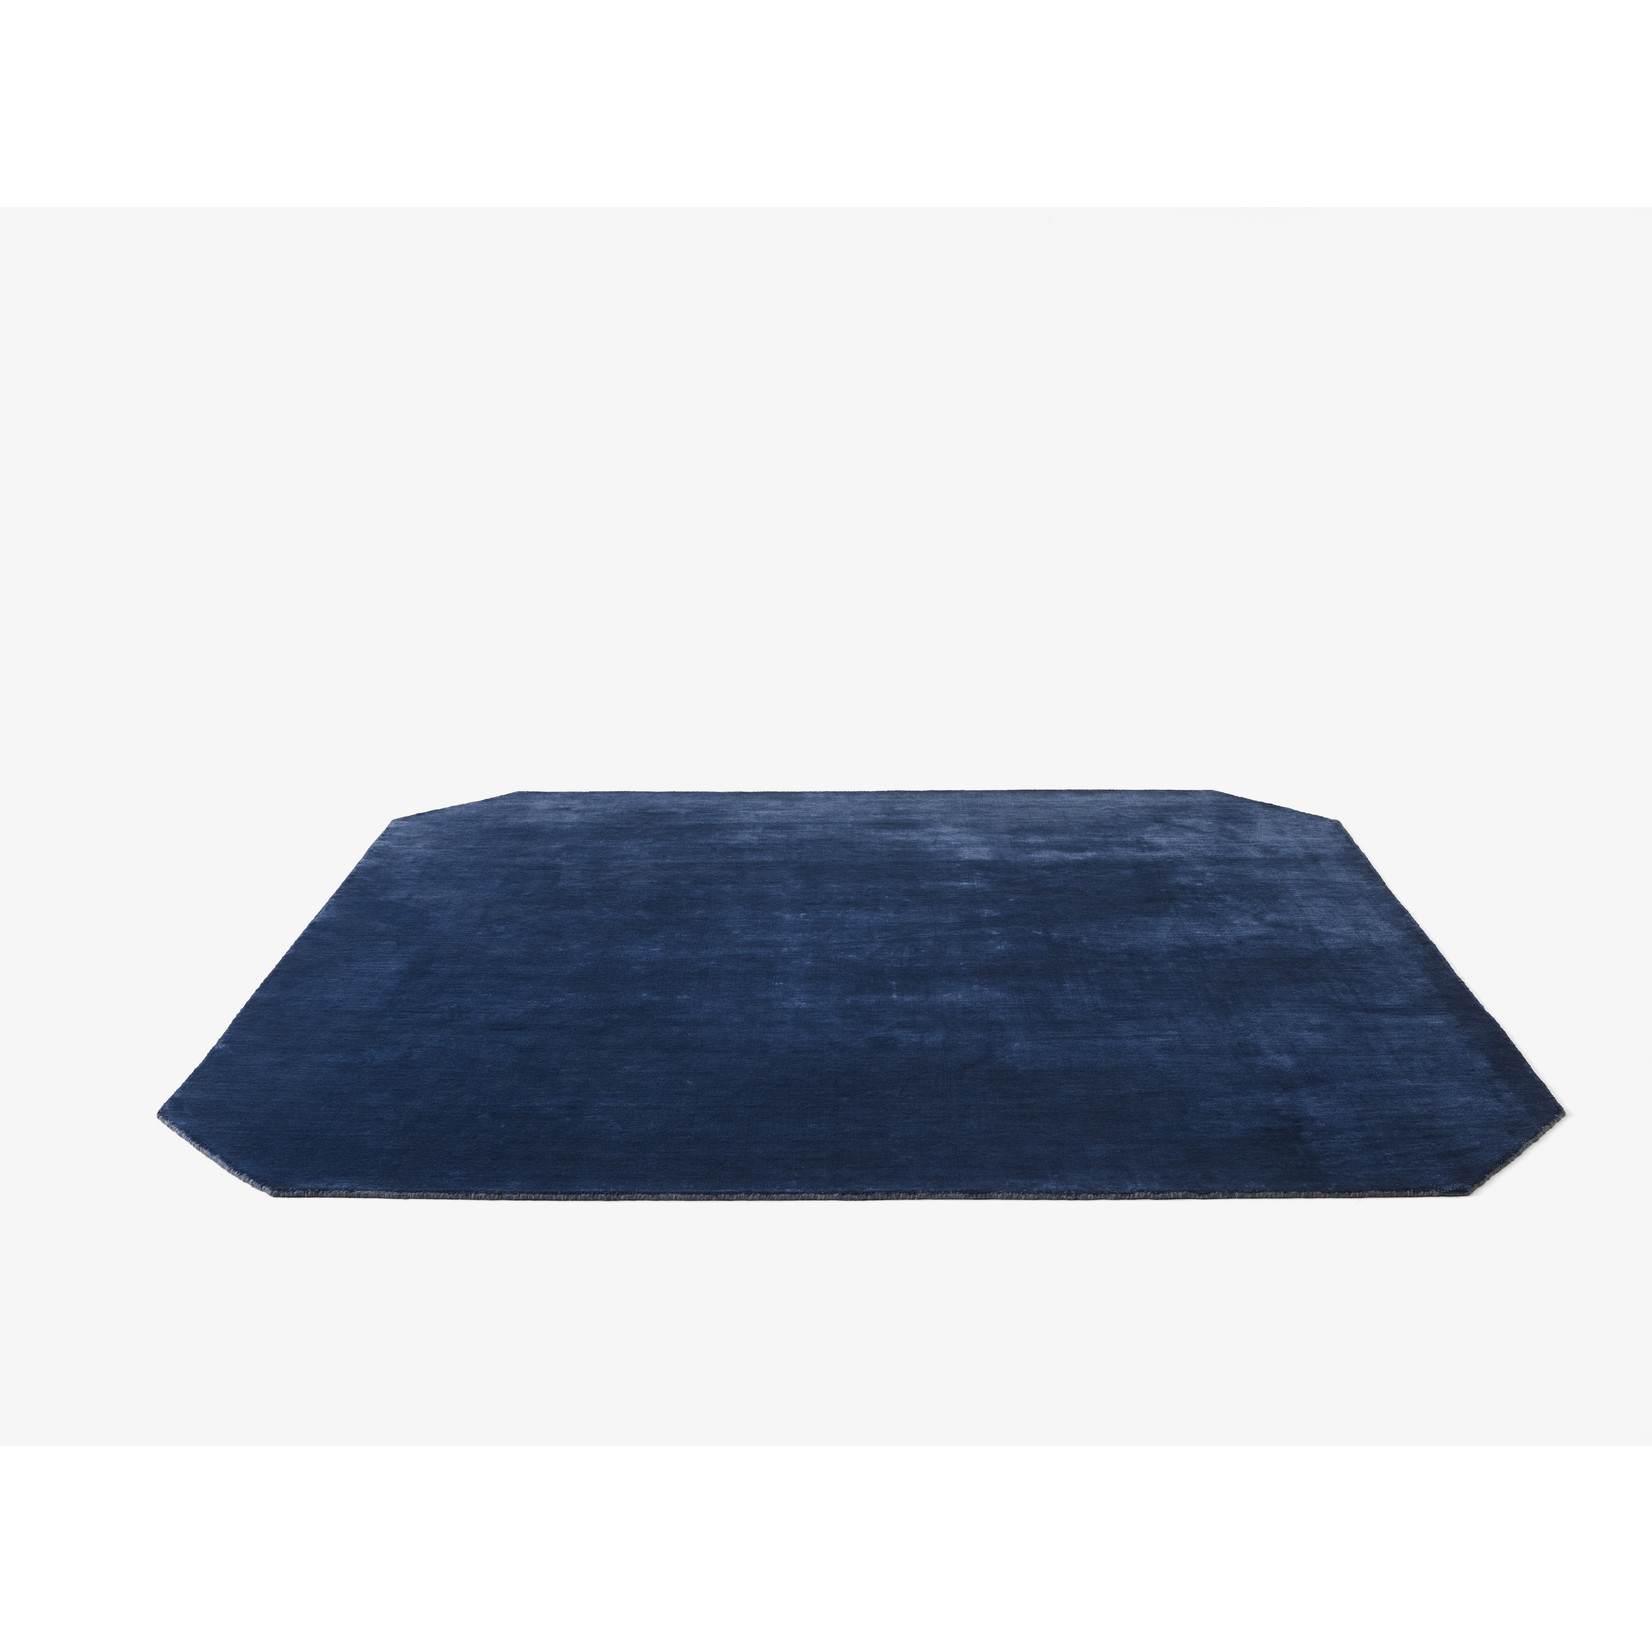 &Tradition The Moor AP8 | Blue Midnight 300x300cm